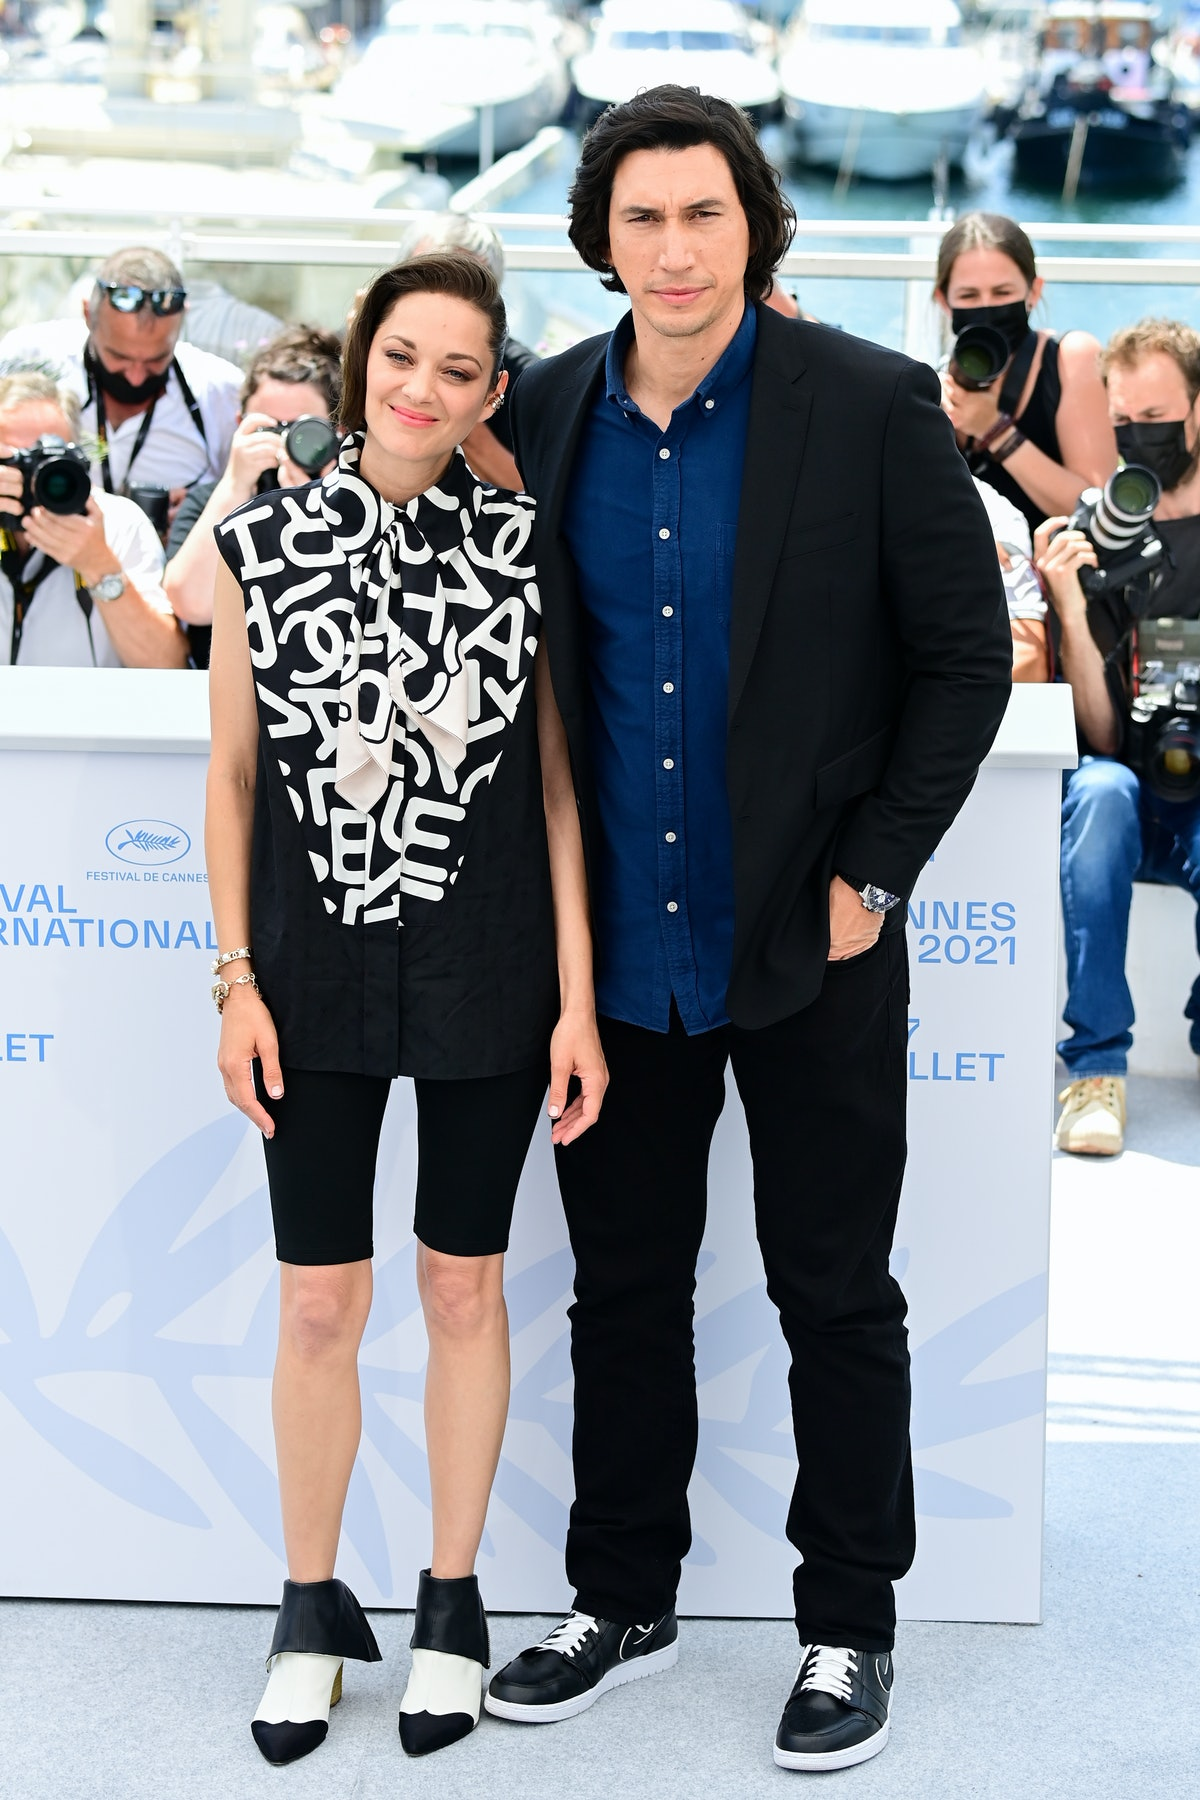 """CANNES, FRANCE - JULY 06: Marion Cotillard and Adam Driver attend the """"Annette"""" photocall during the 74th annual Cannes Film Festival on July 06, 2021 in Cannes, France. (Photo by Daniele Venturelli/WireImage)"""